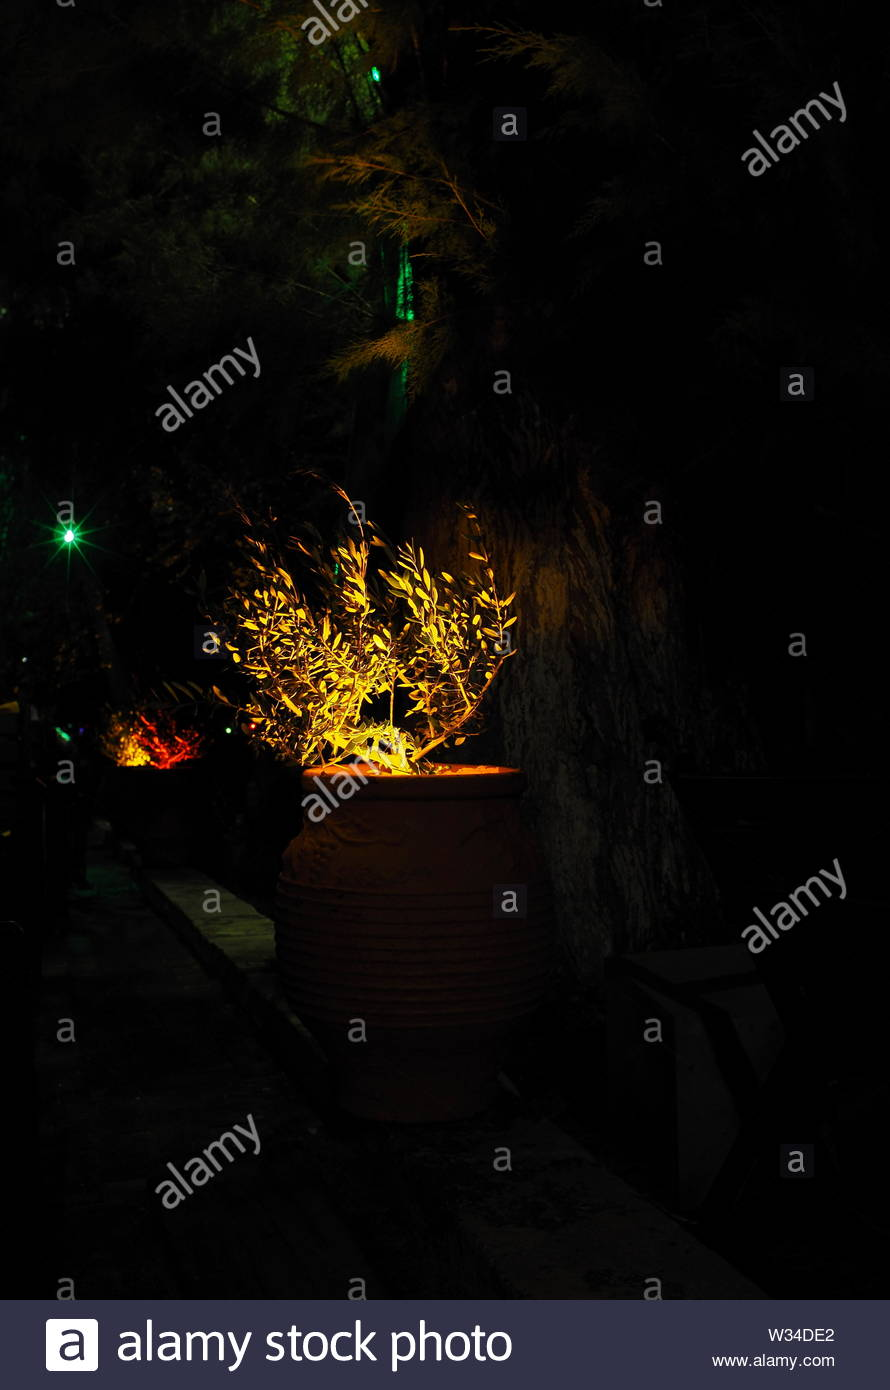 decorative plant in a clay pot at night - Stock Image